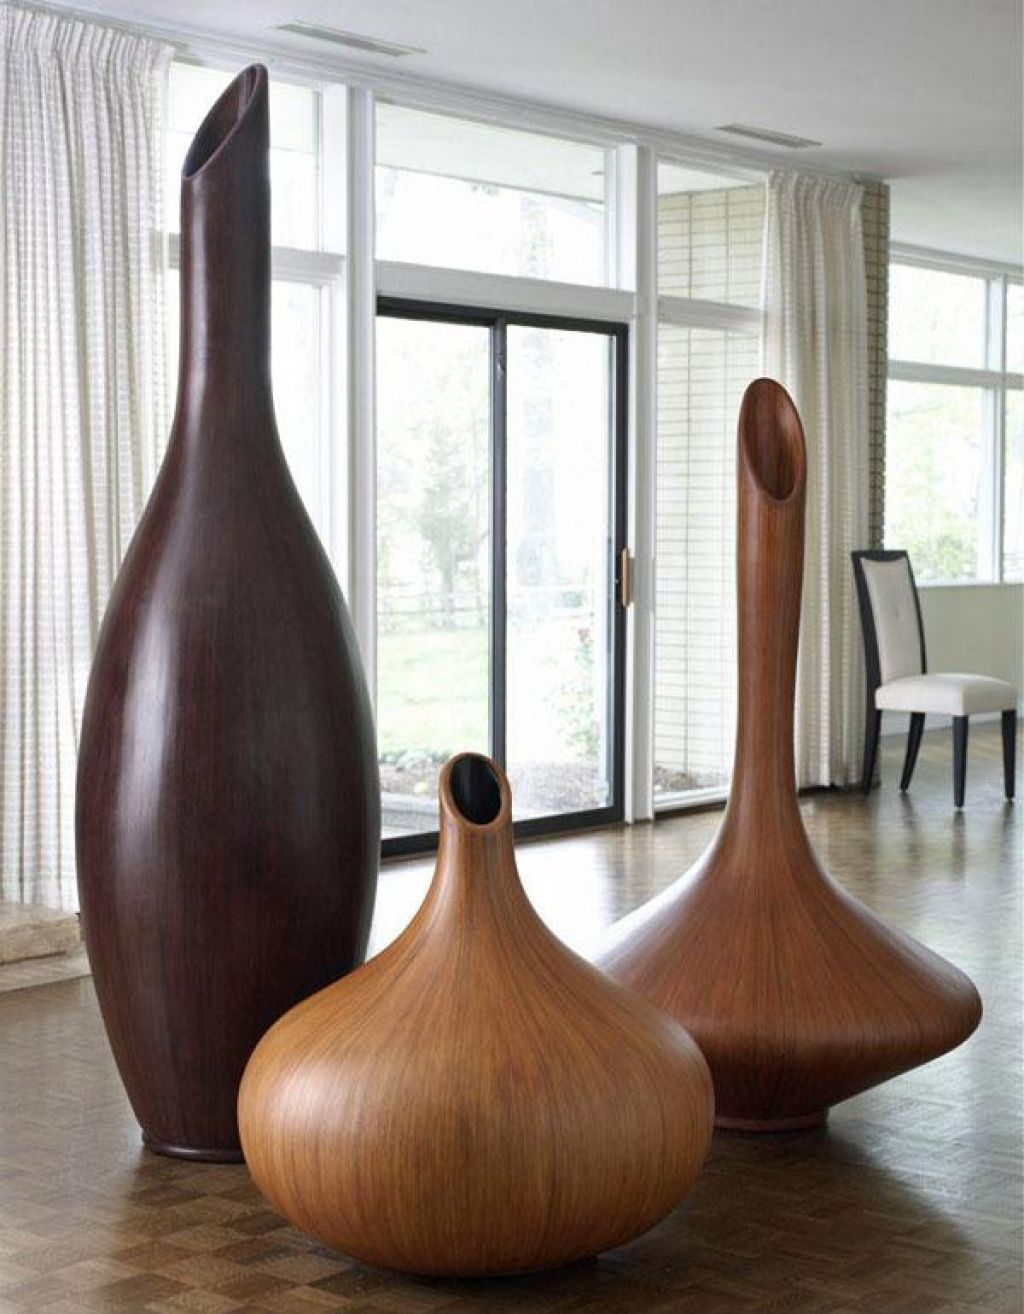 Amazing Tall Decorative Floor Vases : Breathtaking Living Room ... on floor stencils, floor pillows, floor frames, floor storage, floor shelves, floor lamps, floor tiles, floor flowers, floor puzzles, floor planters, floor prints, floor baskets, floor candelabras, floor cabinets, floor furniture, floor sofas, floor markers, floor sculptures, floor glass, floor games,